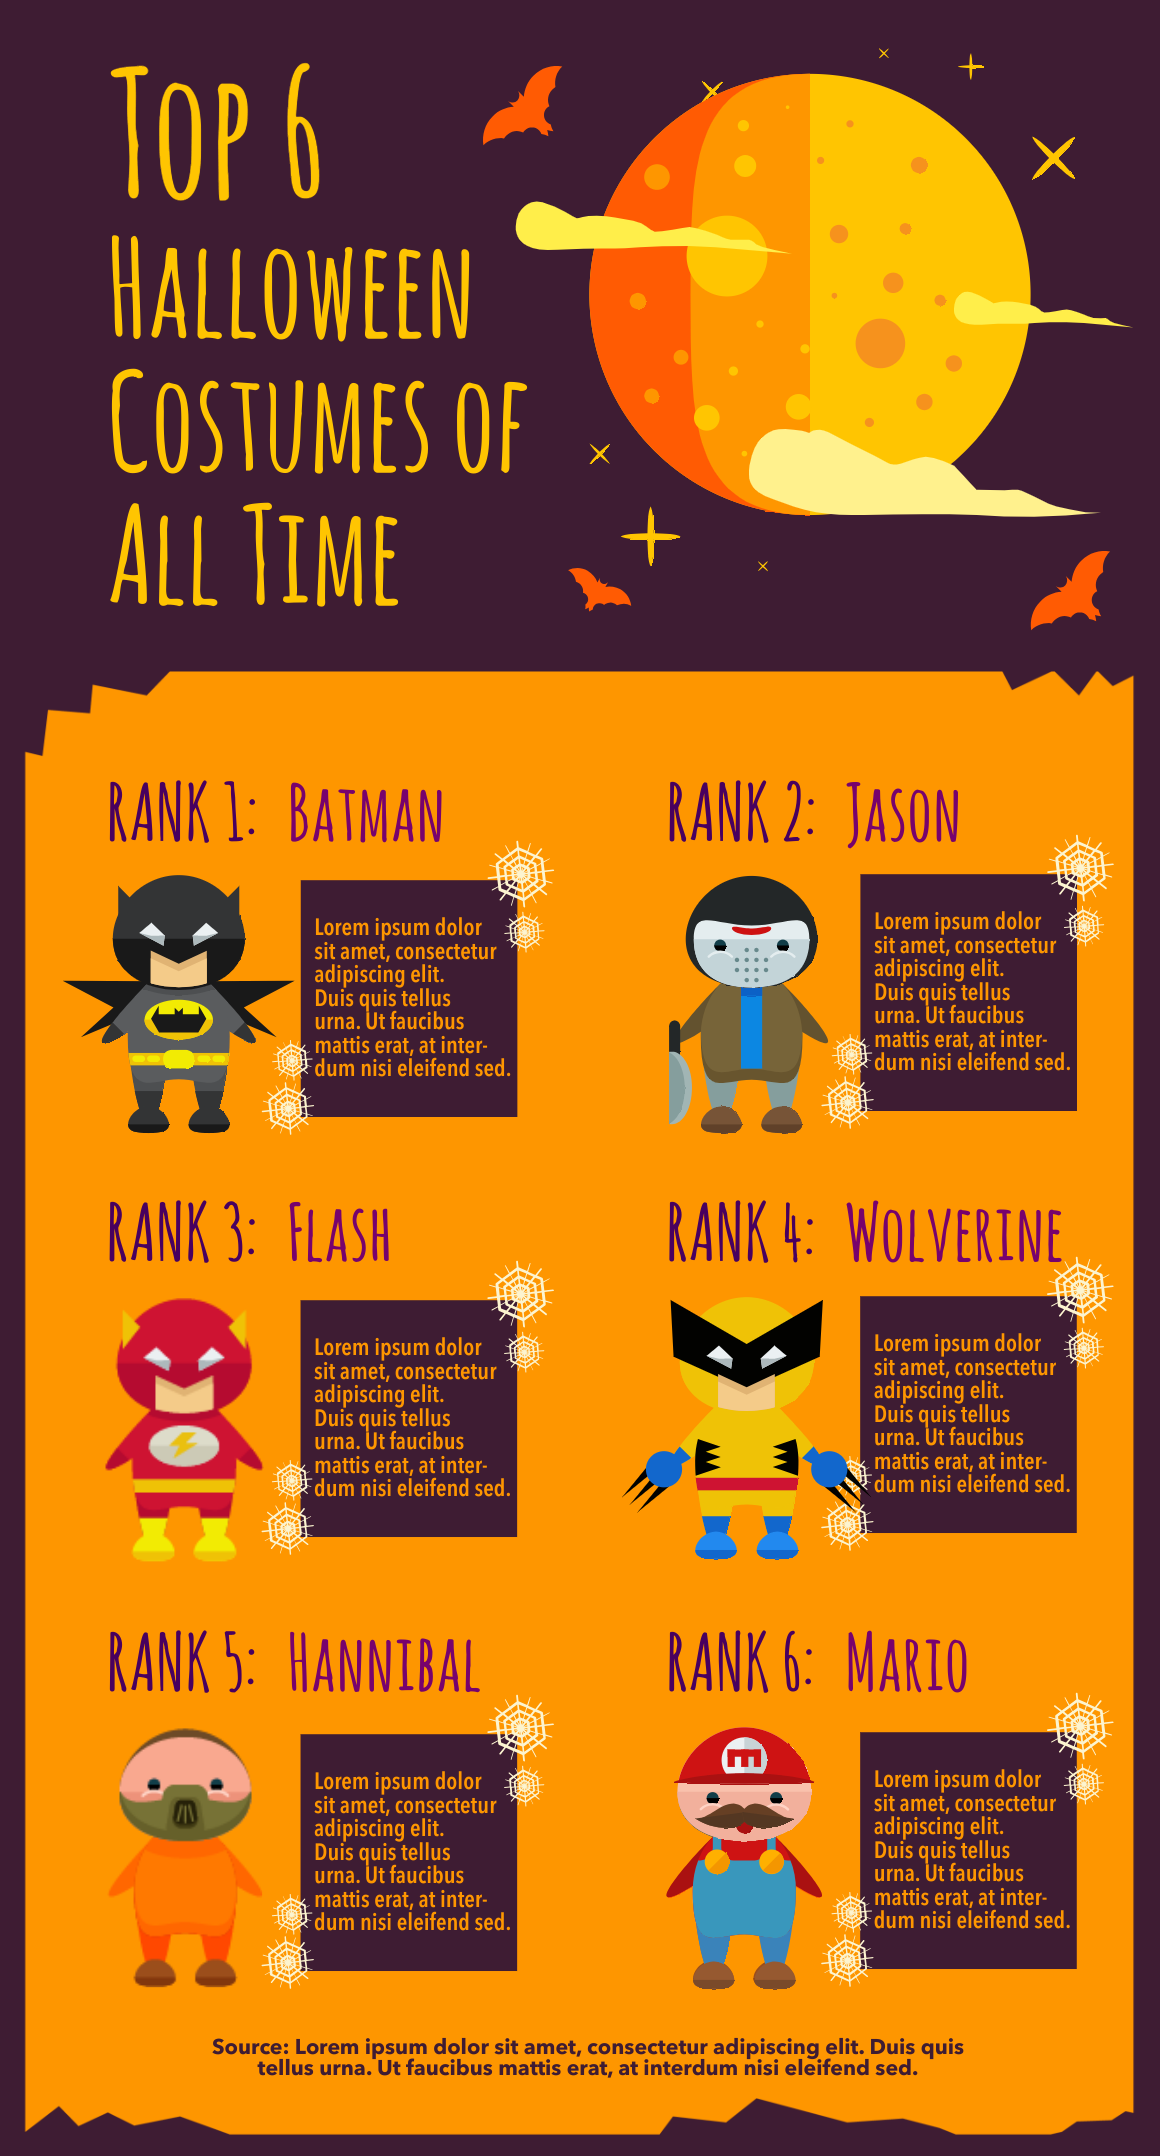 An infographic template about Halloween costumes